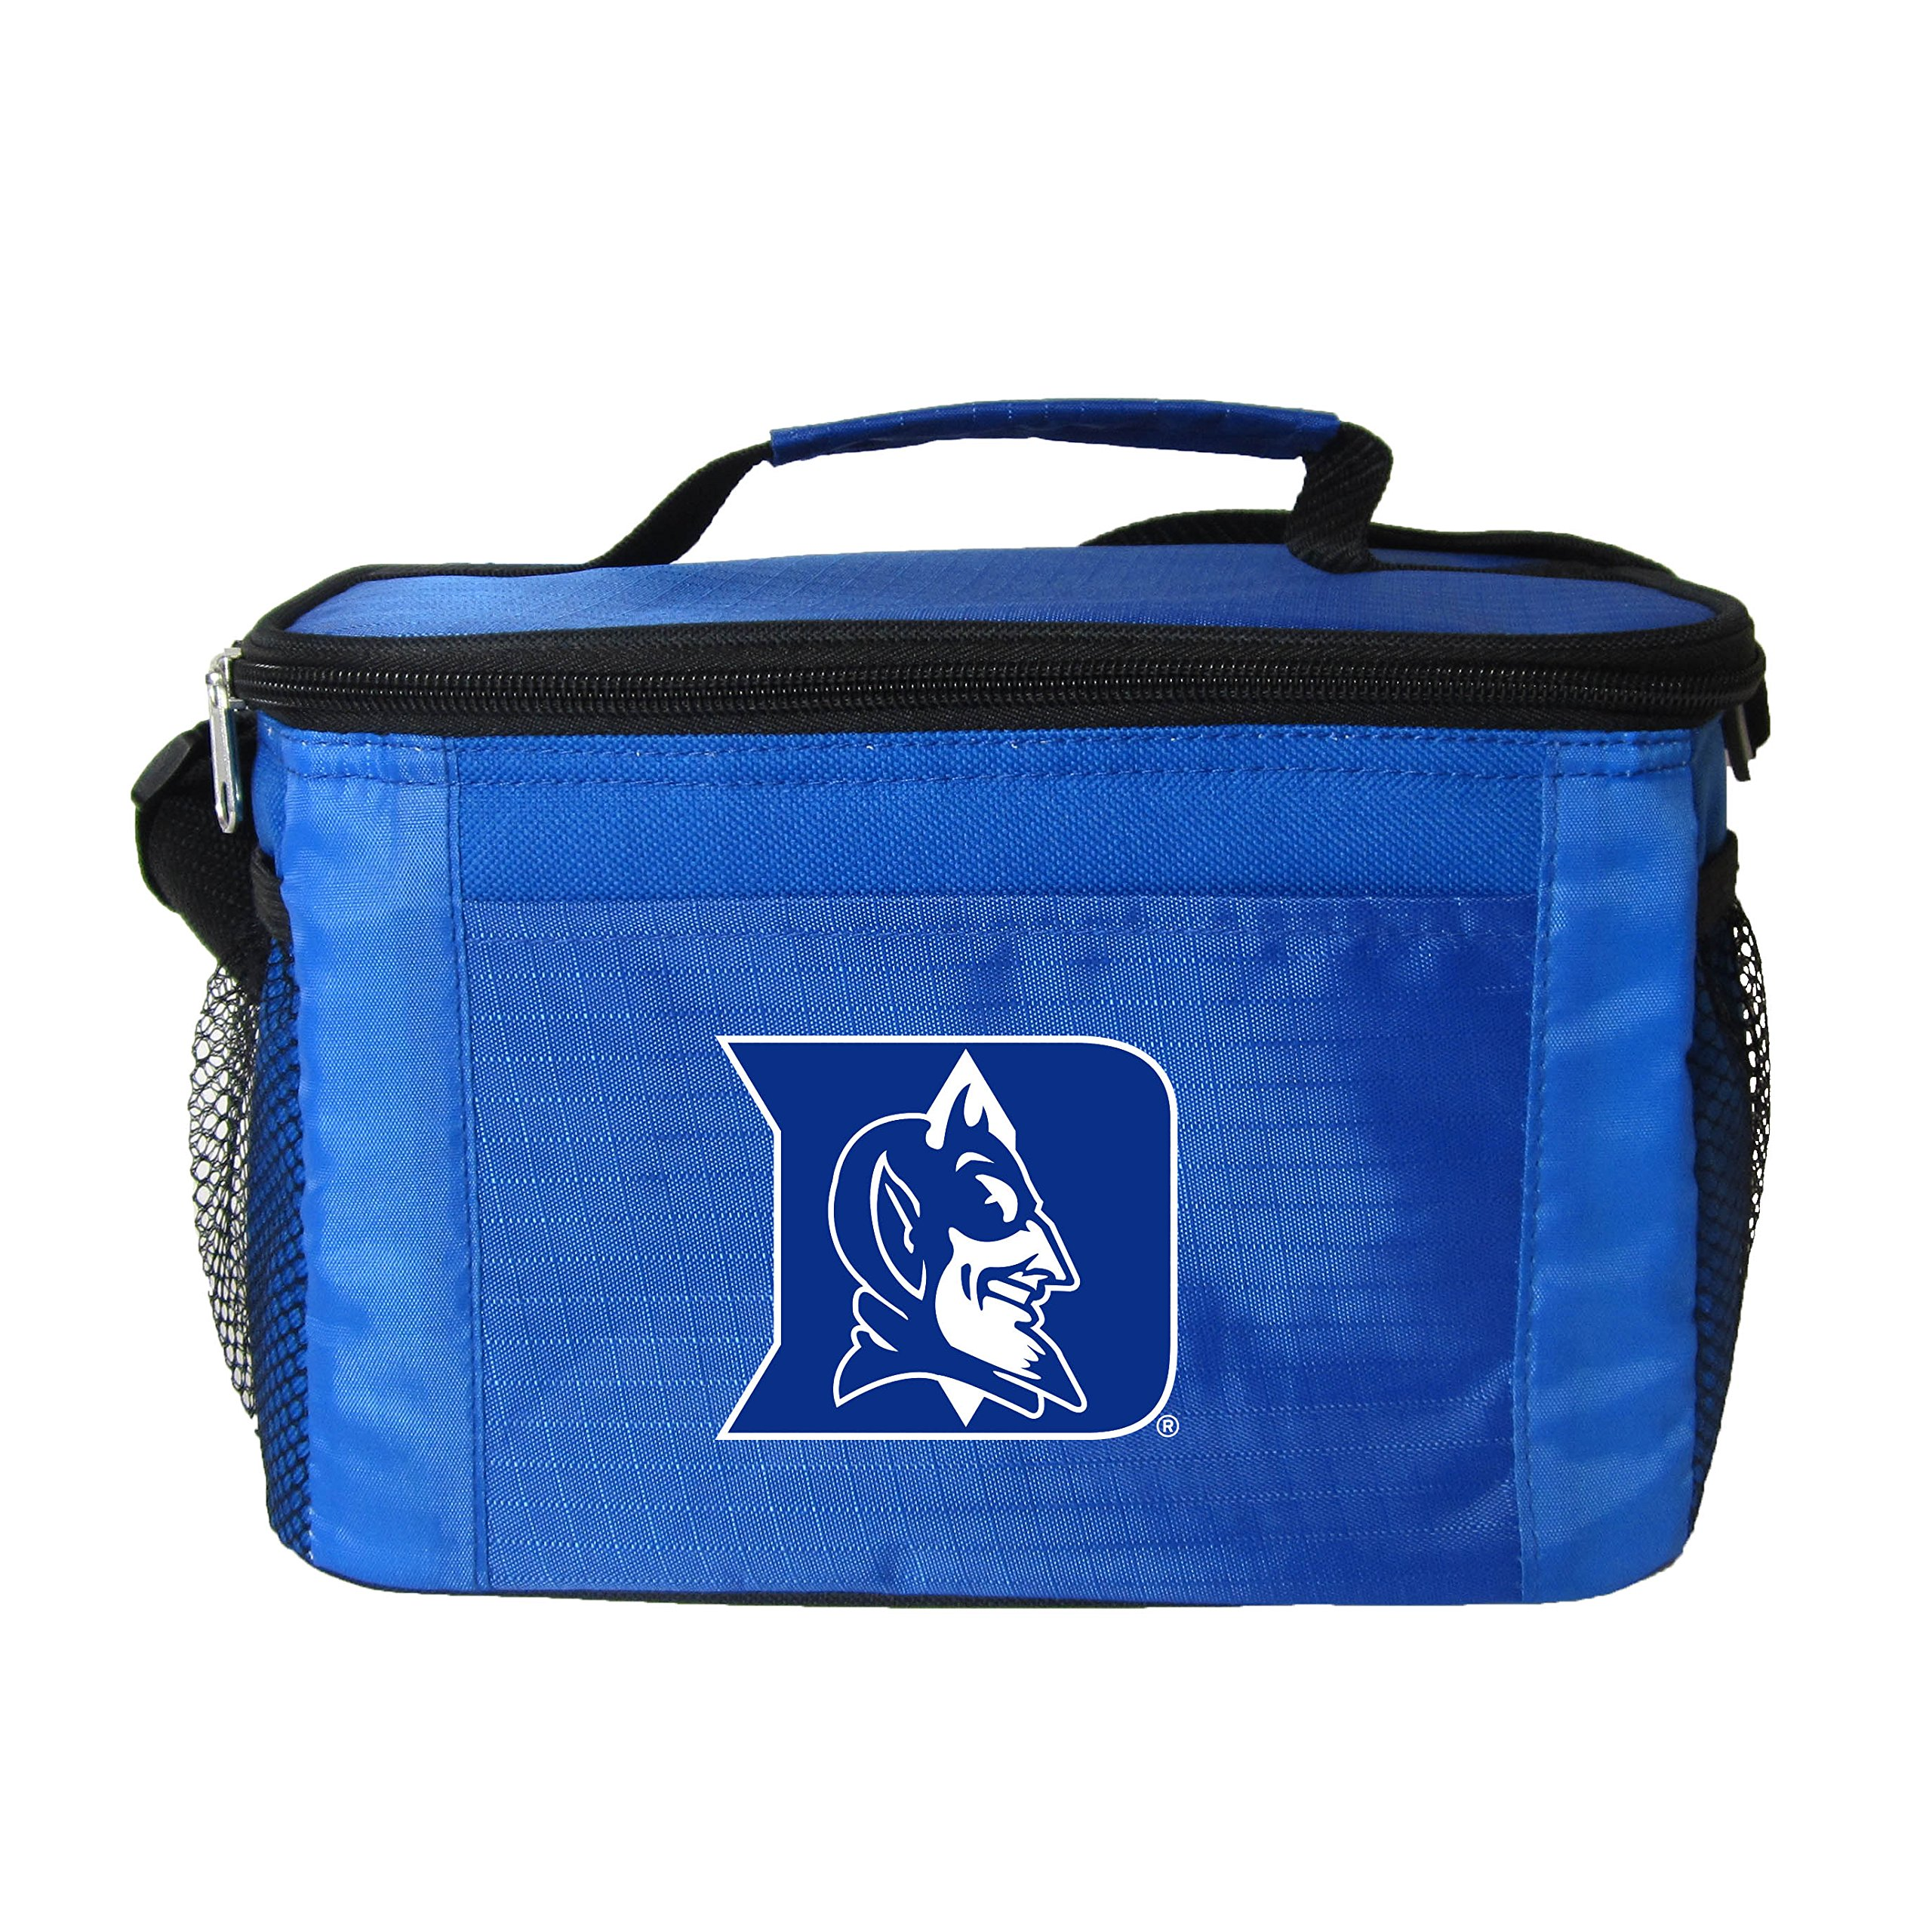 NCAA Duke Devils Team Logo 6 Can Cooler Bag or Lunch Box - Blue